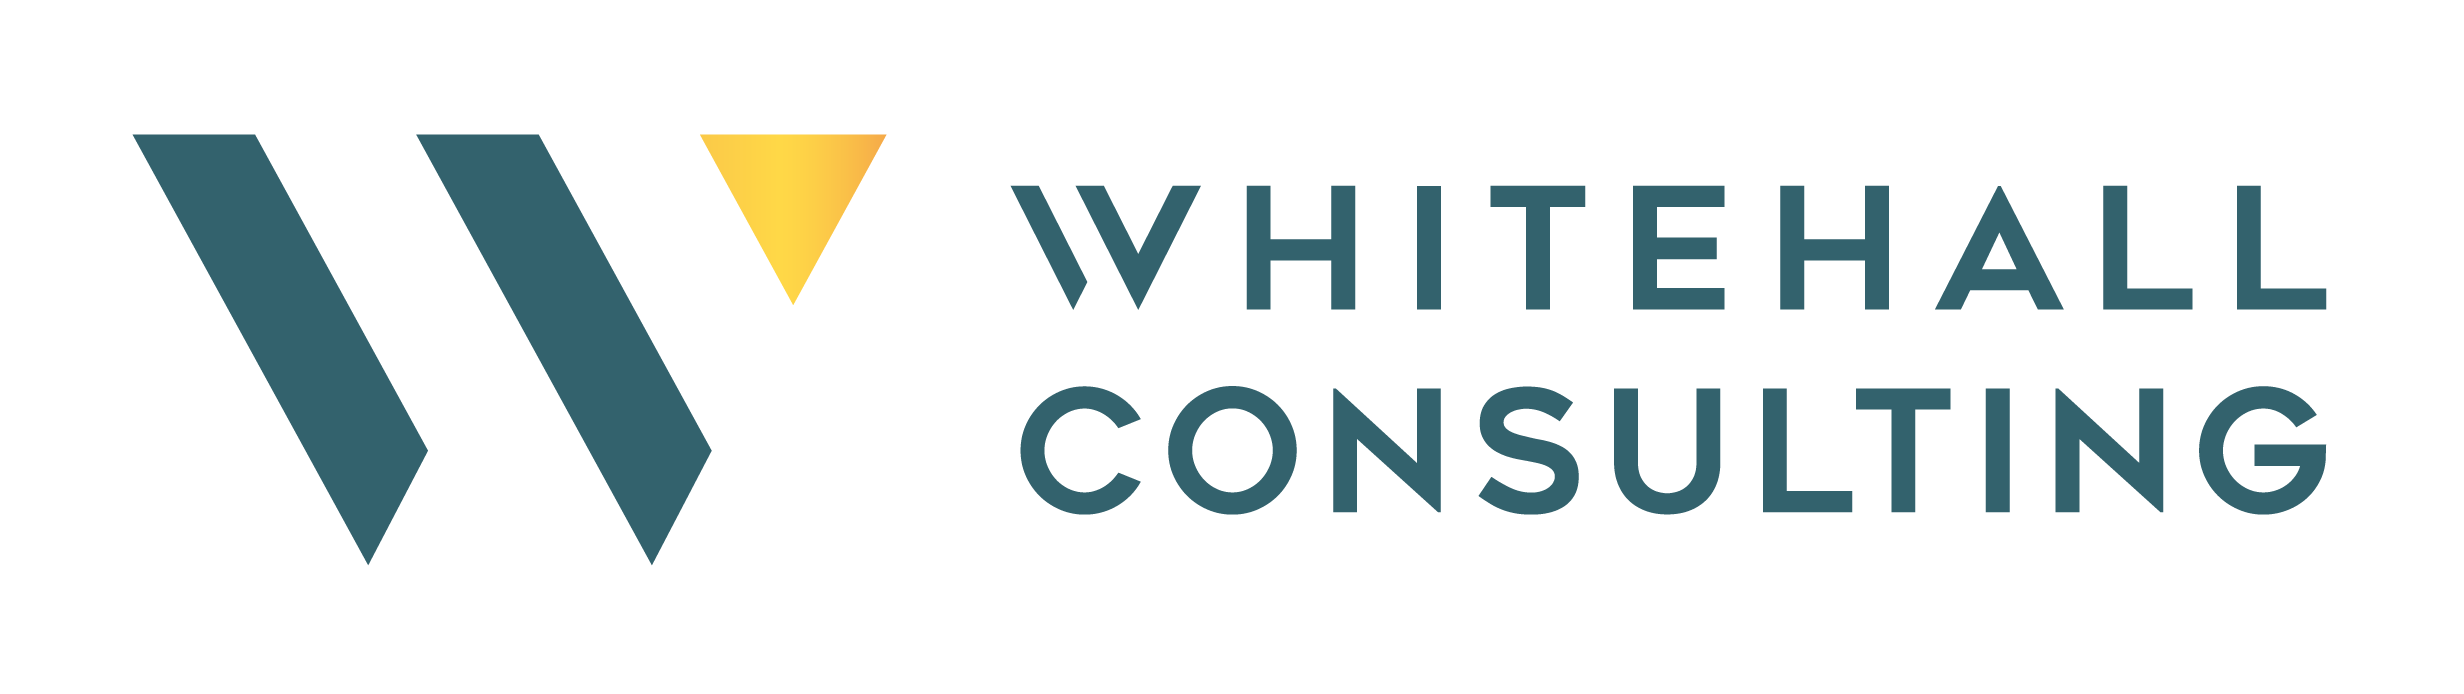 Whitehall Consulting